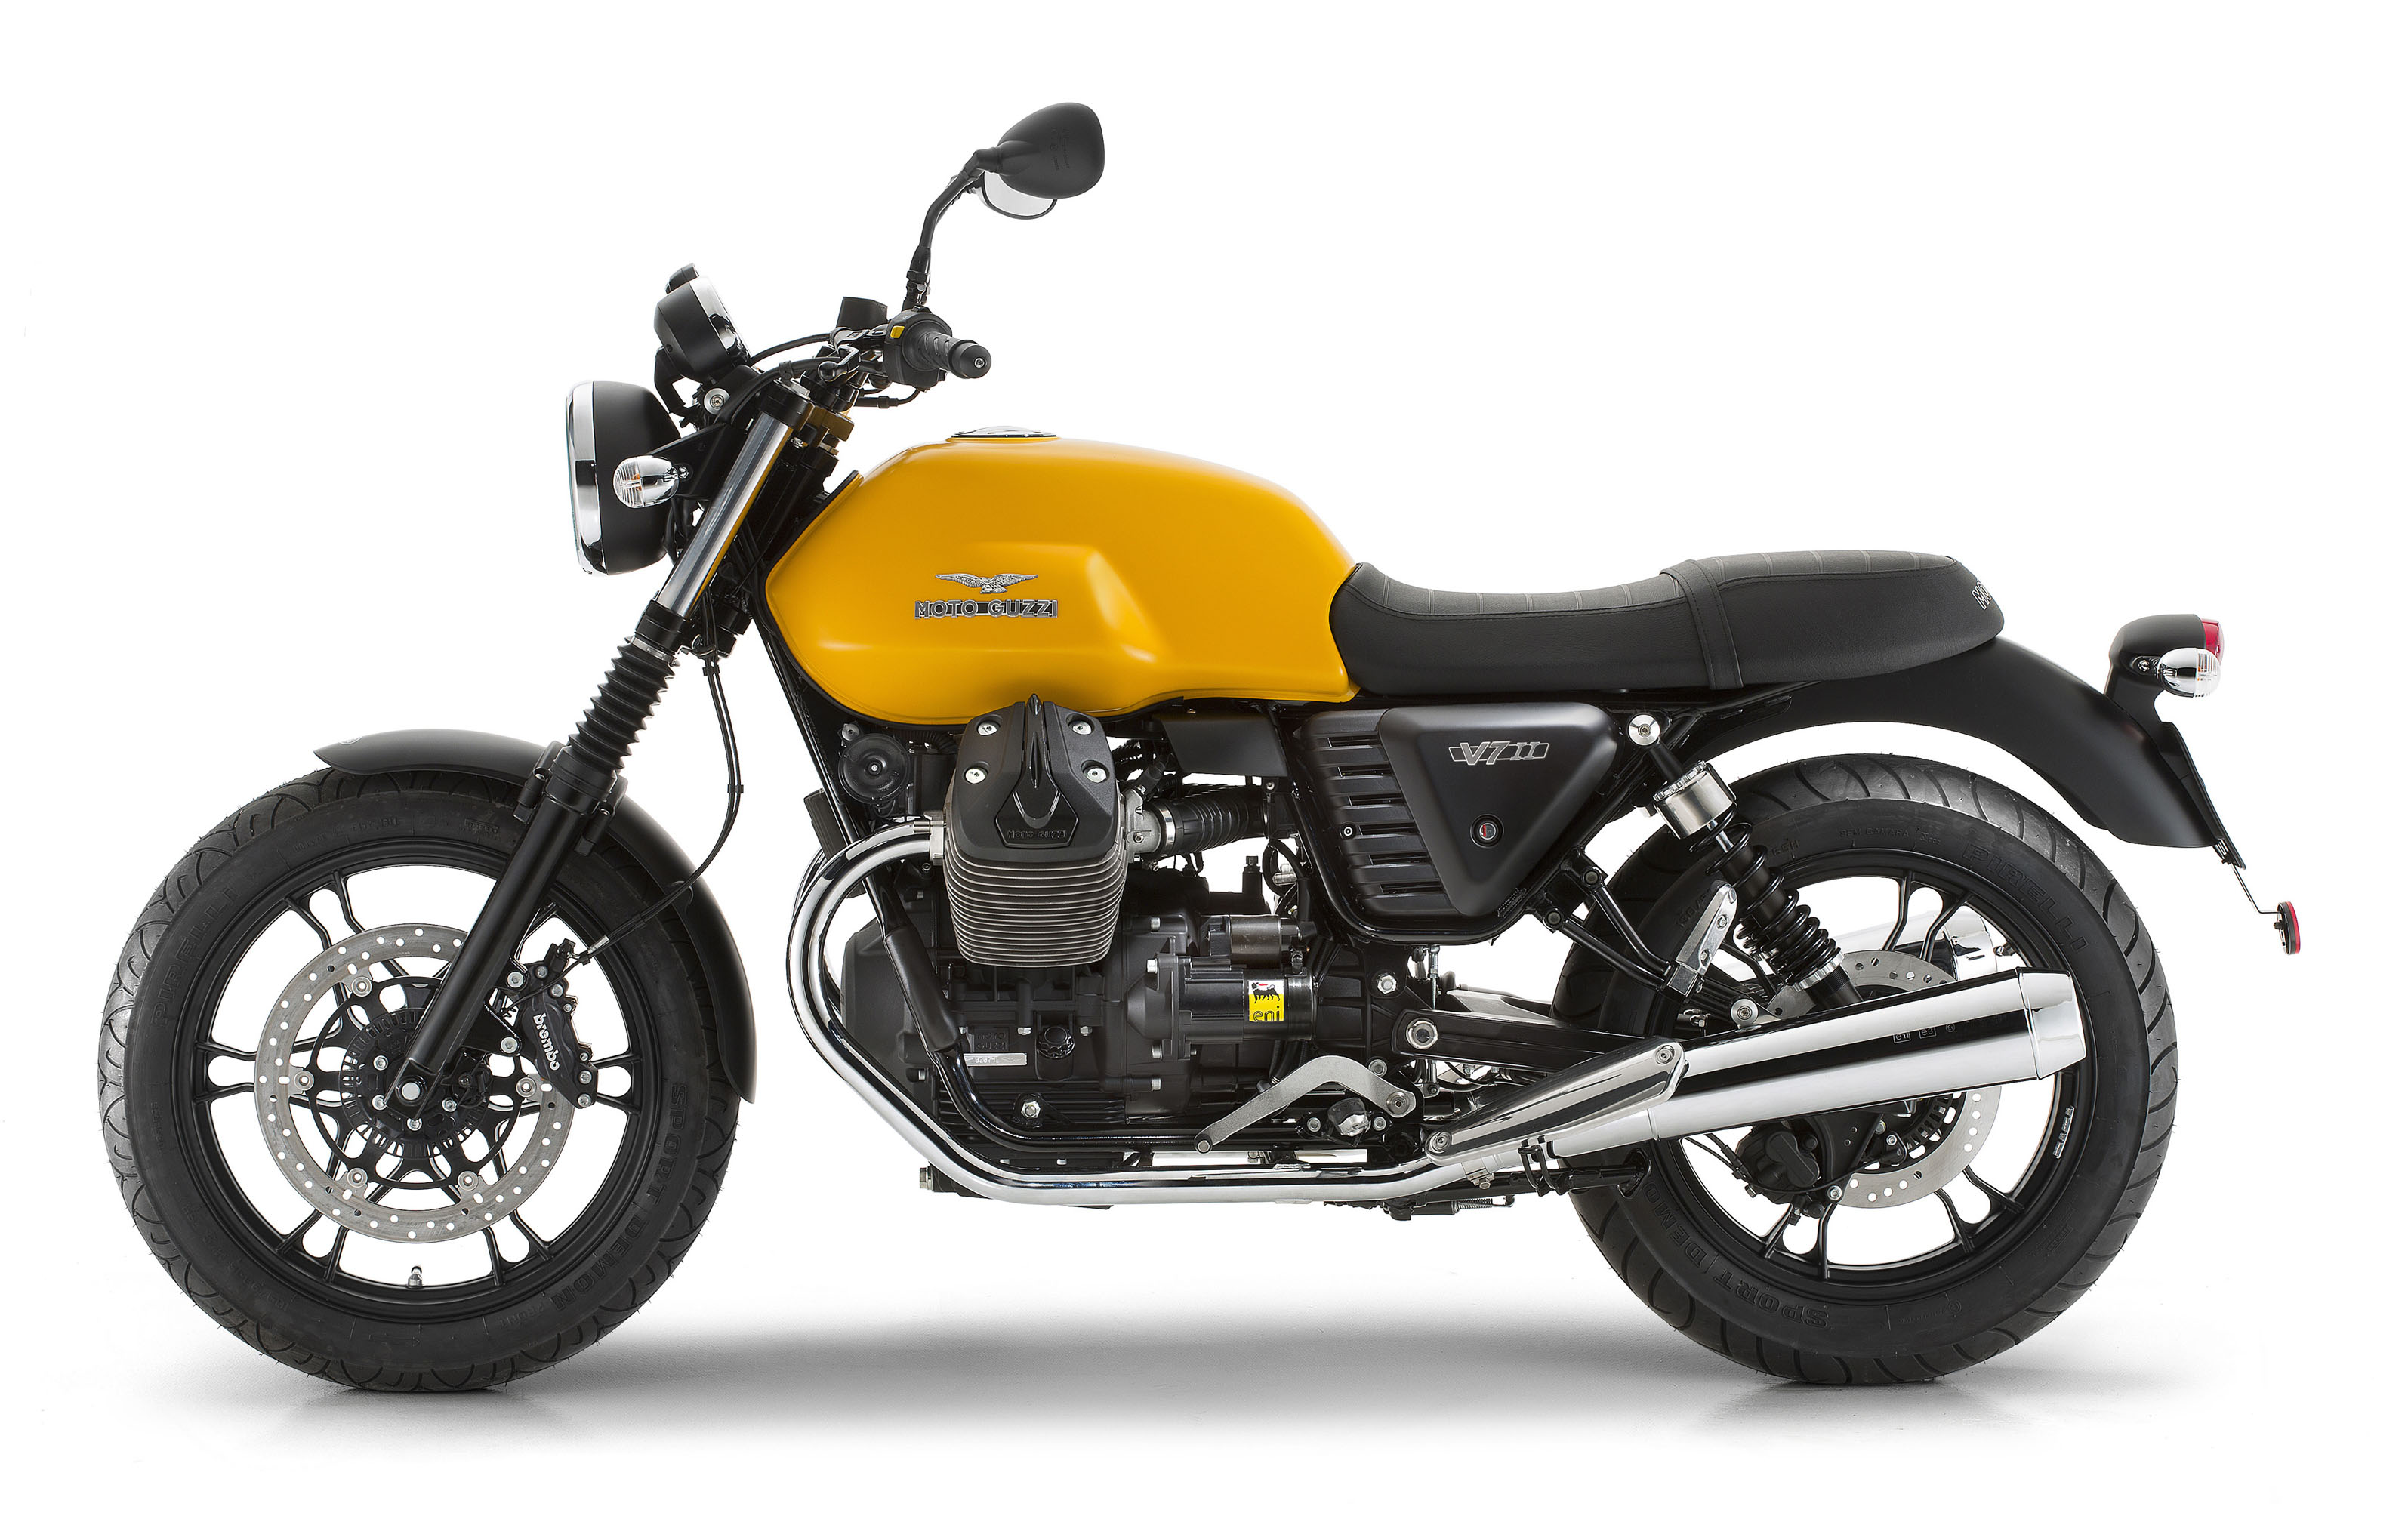 Revealed: New Moto Guzzi V7 with traction control and ABS